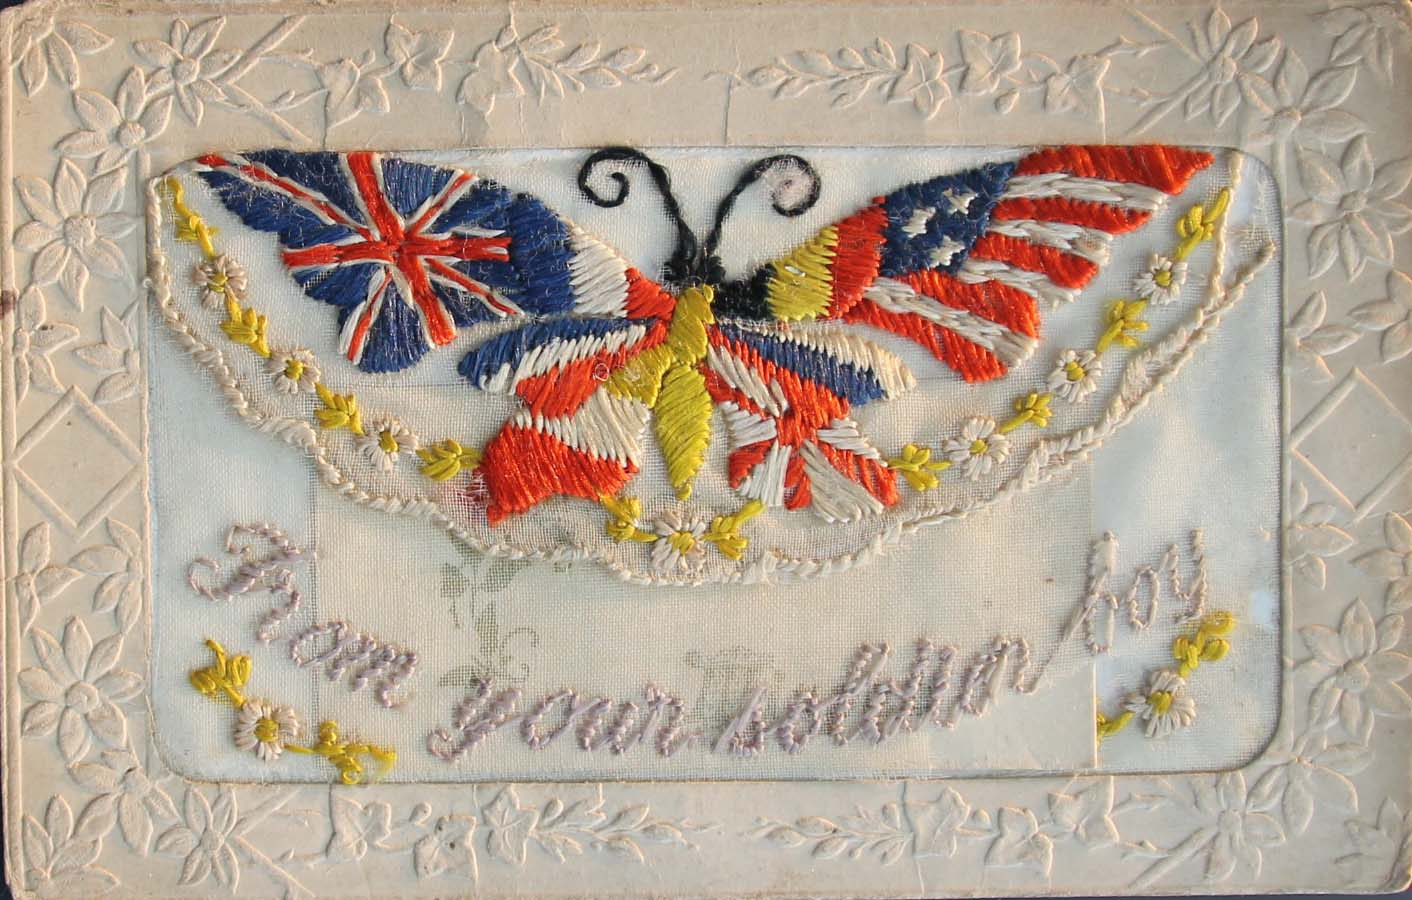 an emboridered card with a butterfly motif with British and American flags on its wings